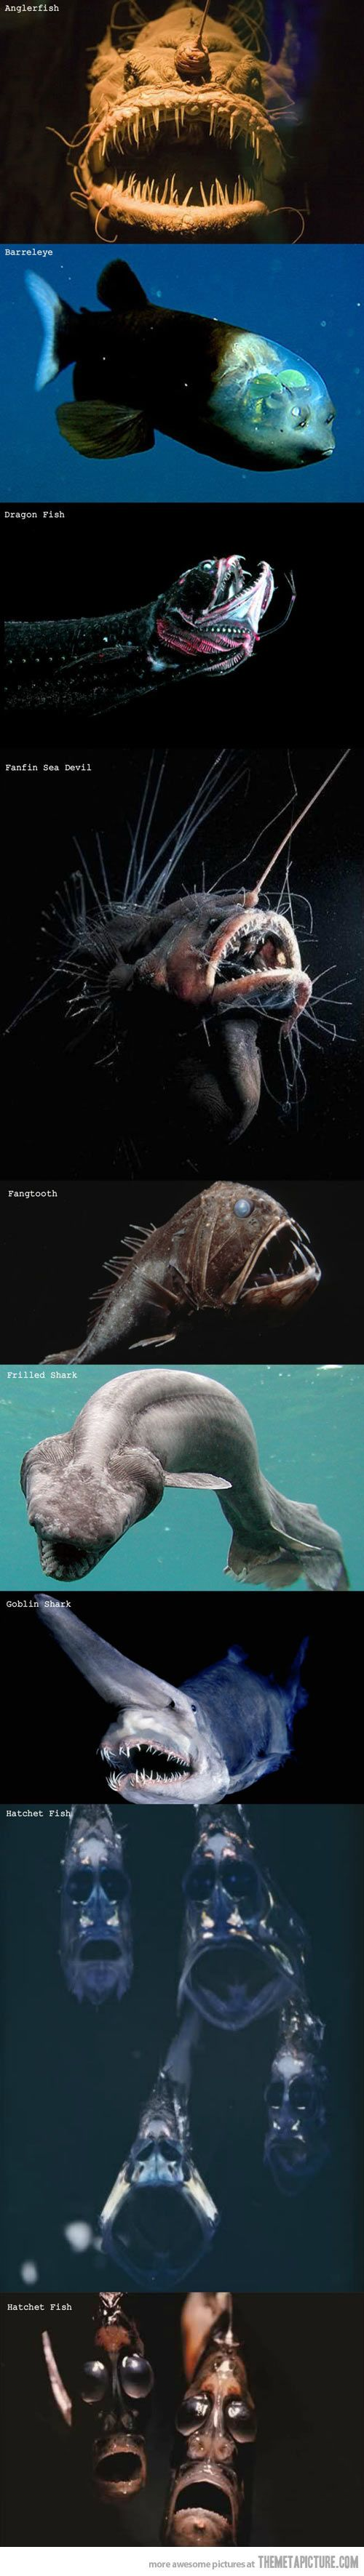 Strange creatures of the sea… Well these are where my nightmares will be coming from for the next while. Why do these exist!